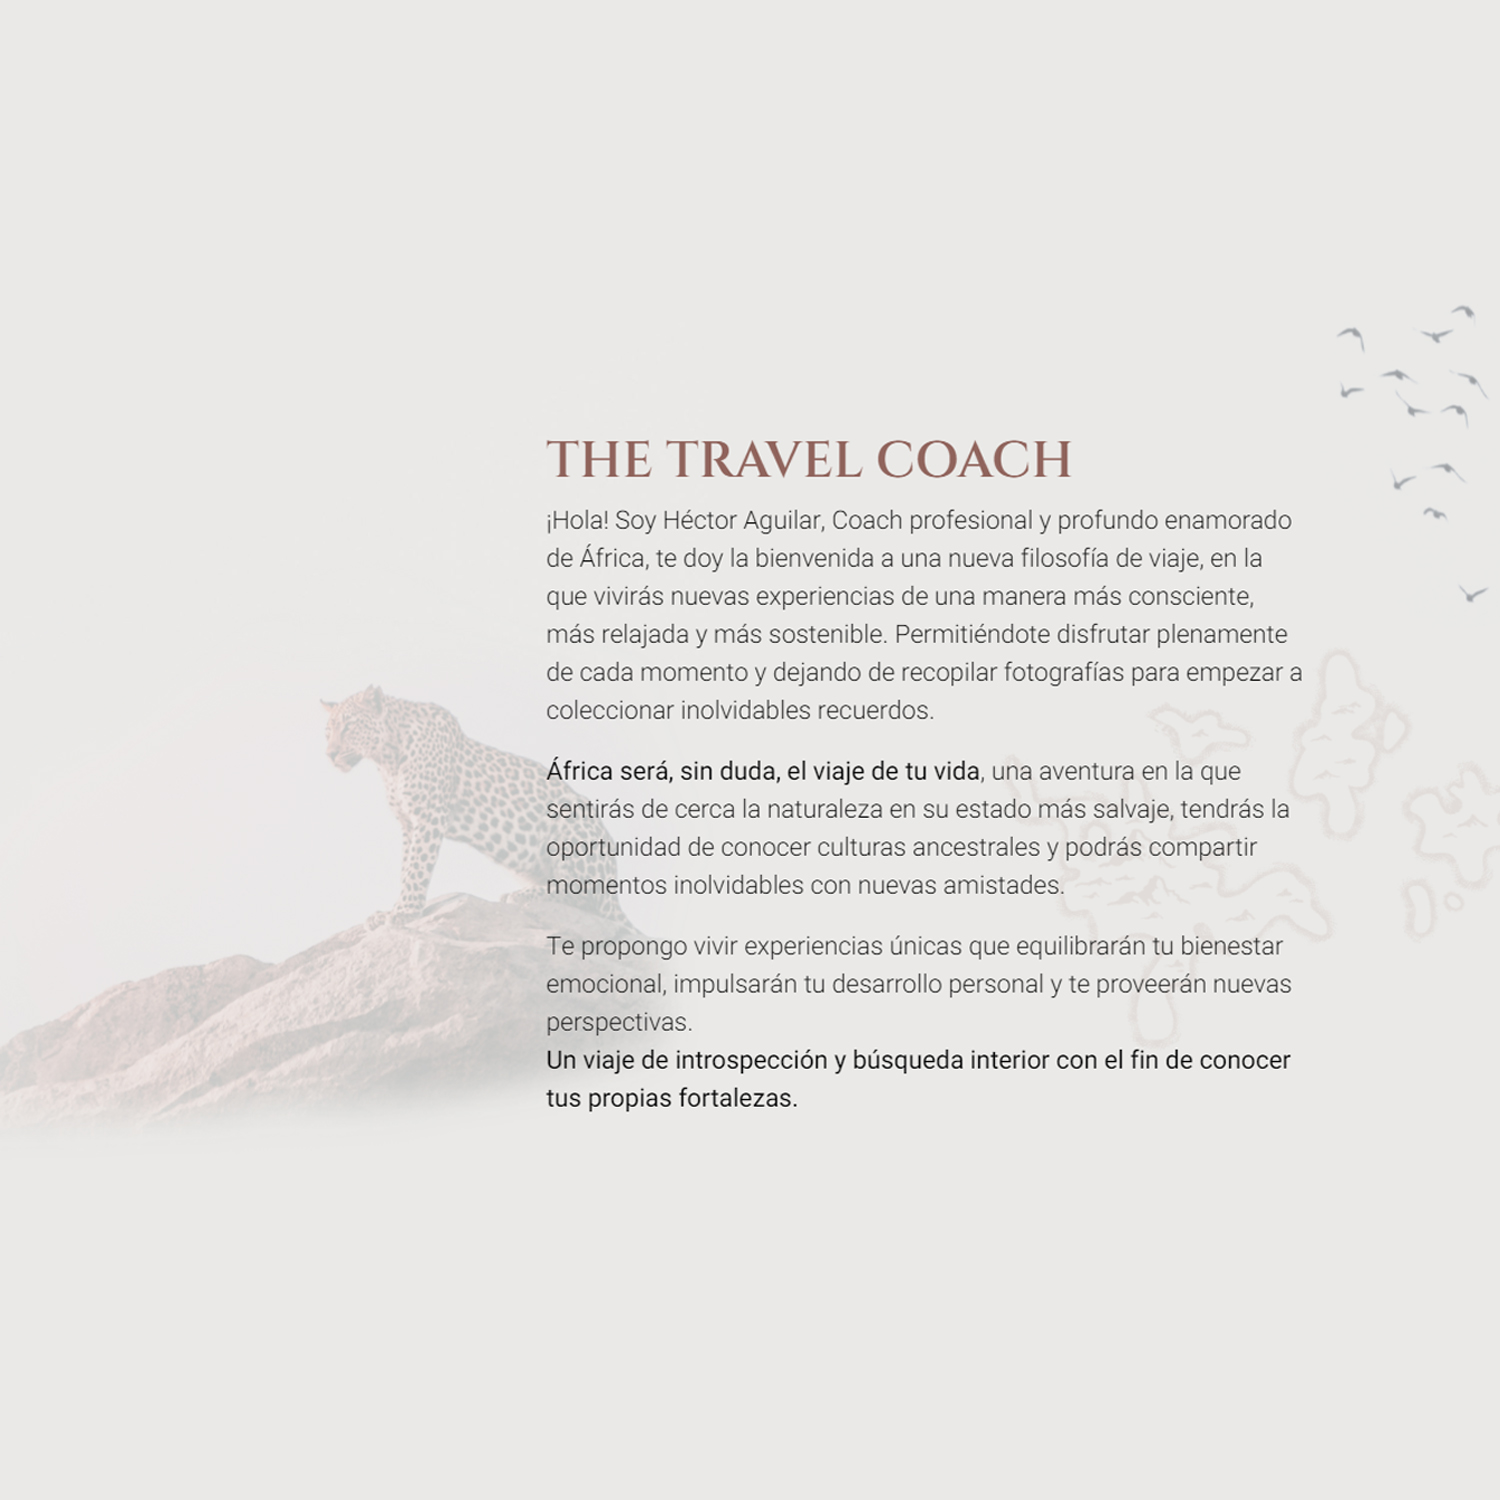 The Travel Coach